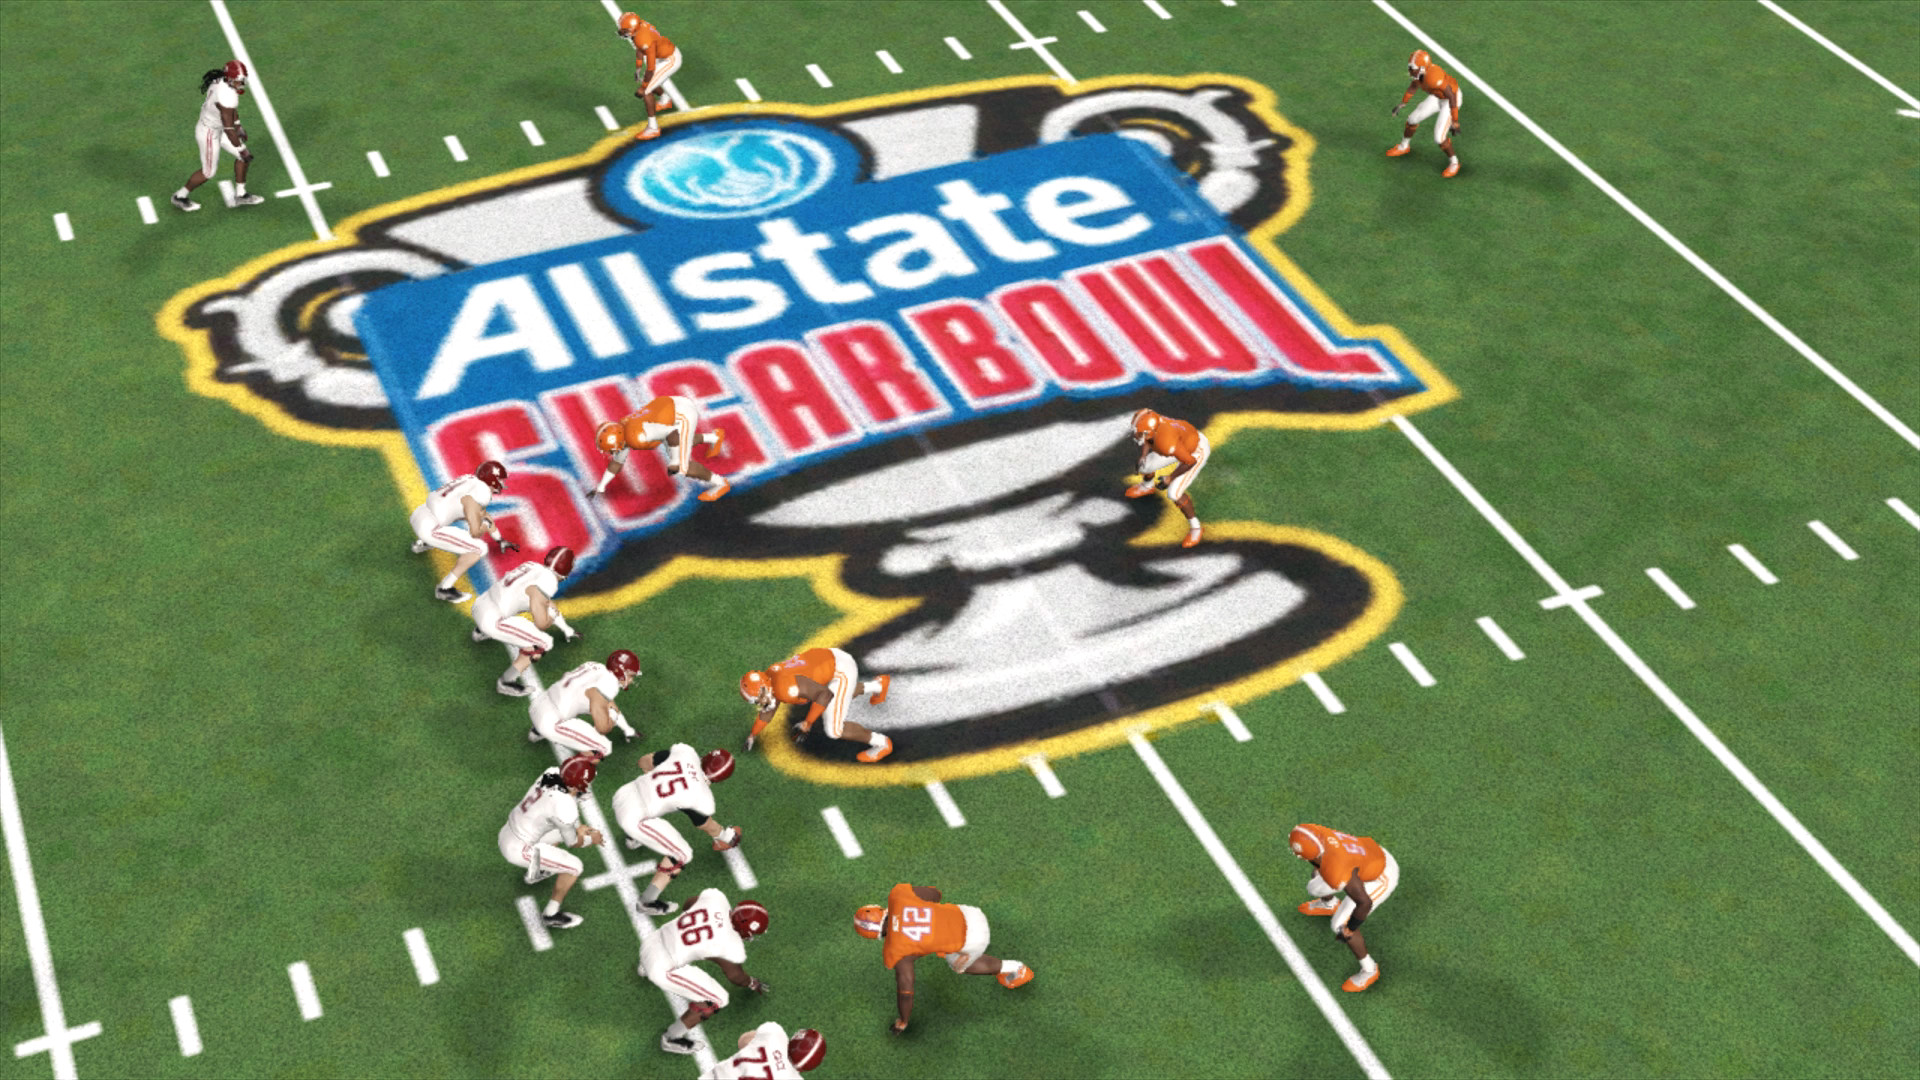 Sugar Bowl: No. 4 Alabama dominates No